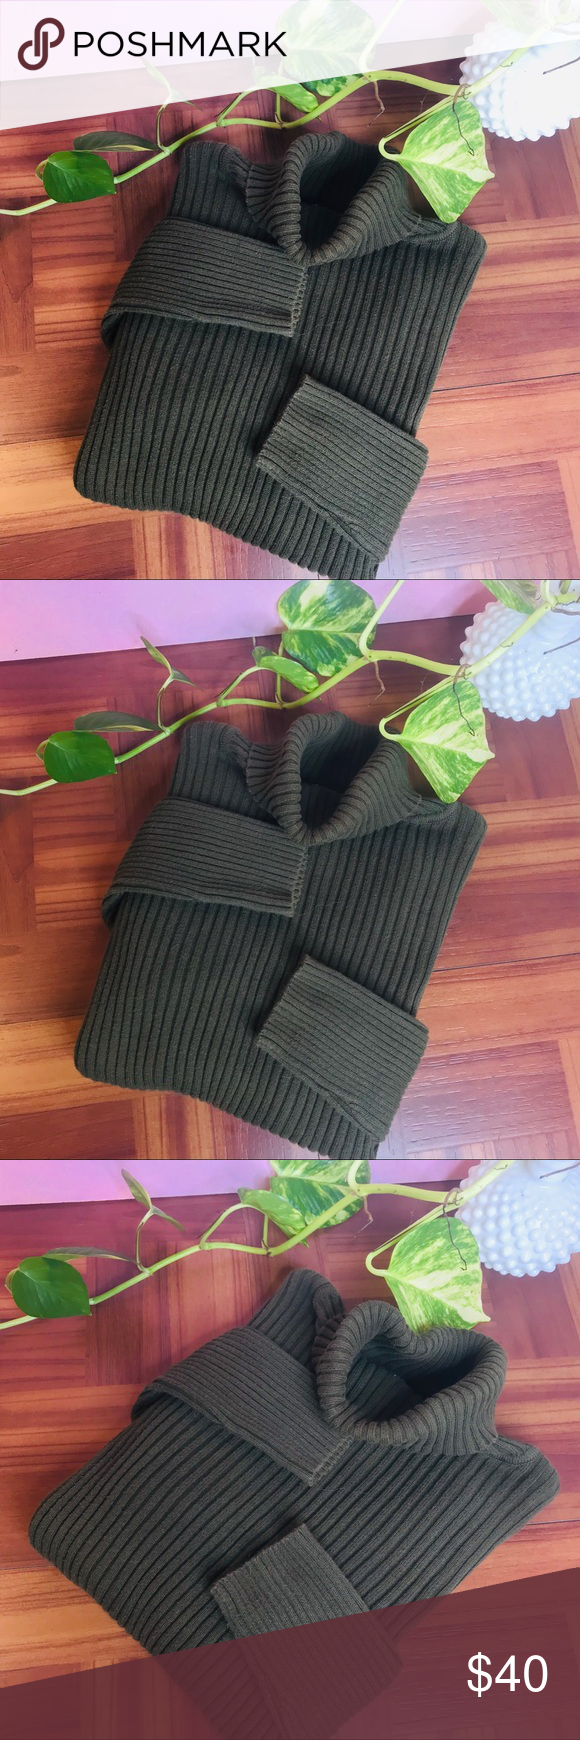 vtg vsco olive ribbed crop turtleneck sweater vtg vsco olive ribbed crop turtleneck sweater • Tags small but would fit an XS nicely as oversized swe...